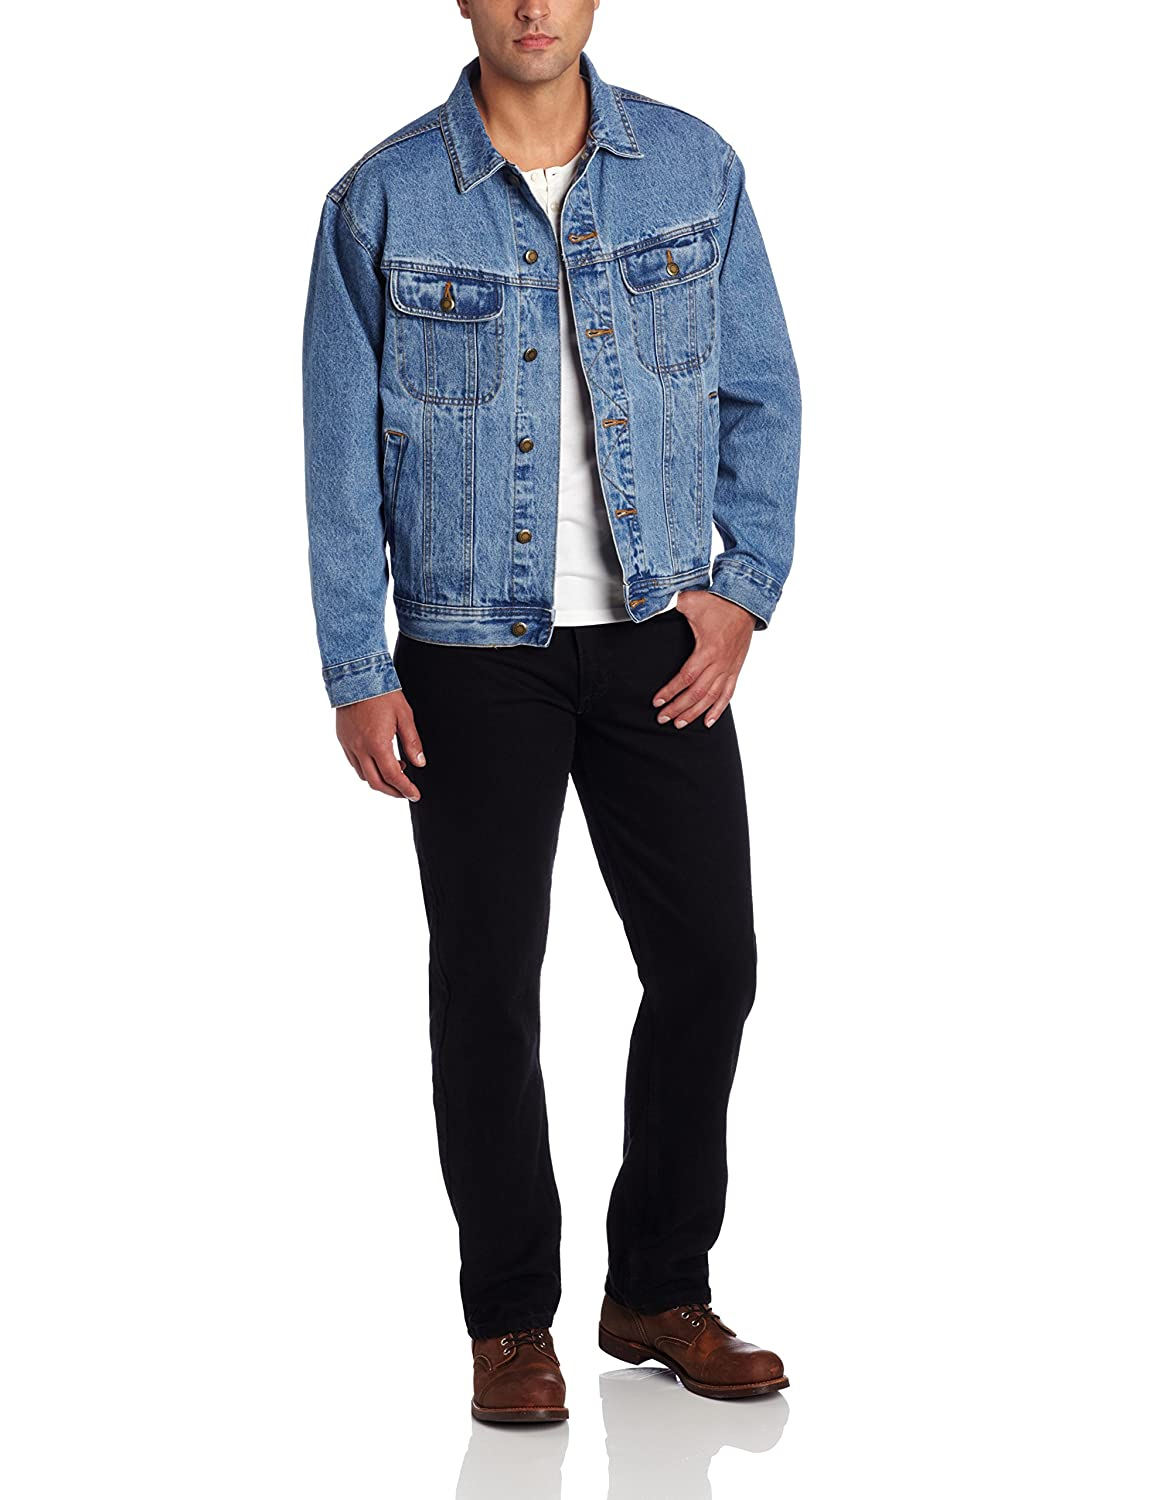 Wrangler Men's Rugged Wear Unlined Denim Jacket at Amazon Men's ...